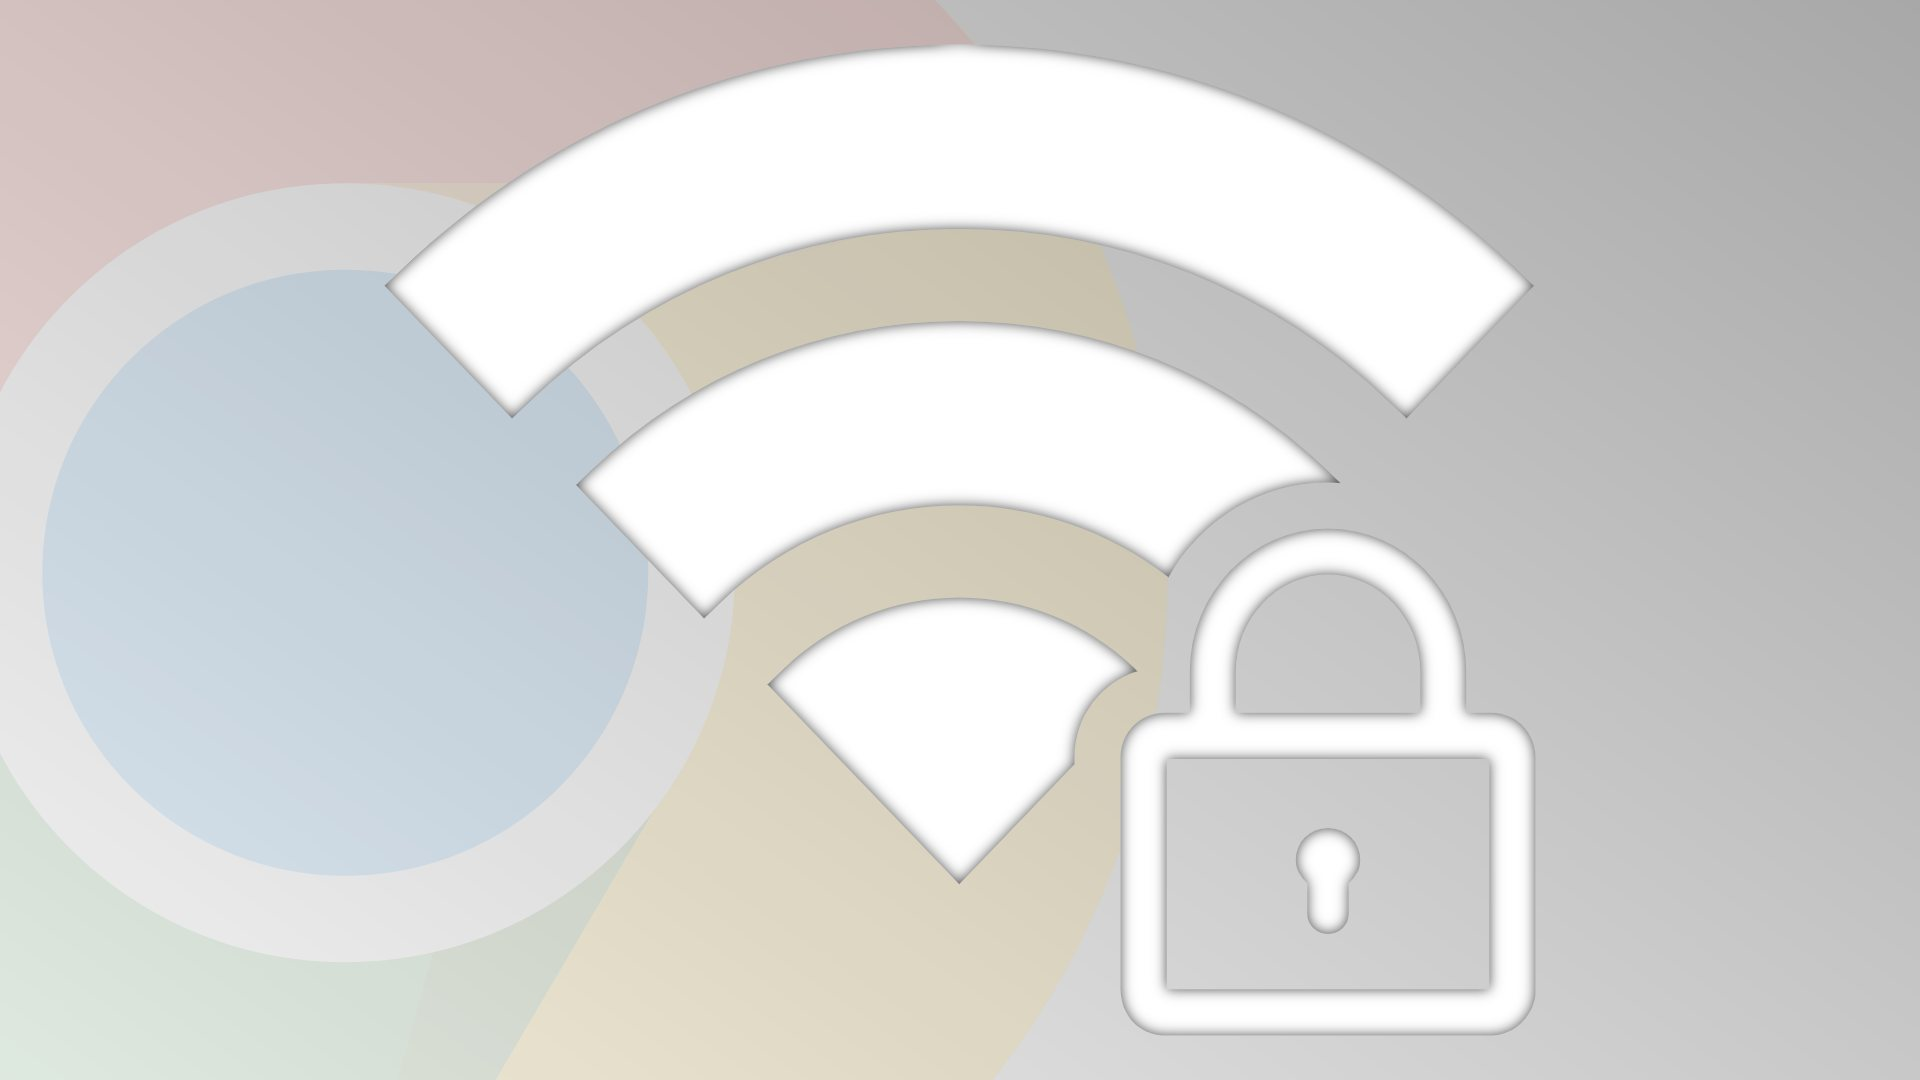 Chrome OS 85 Wi-Fi Password Sync is not working for some, but there's an easy fix